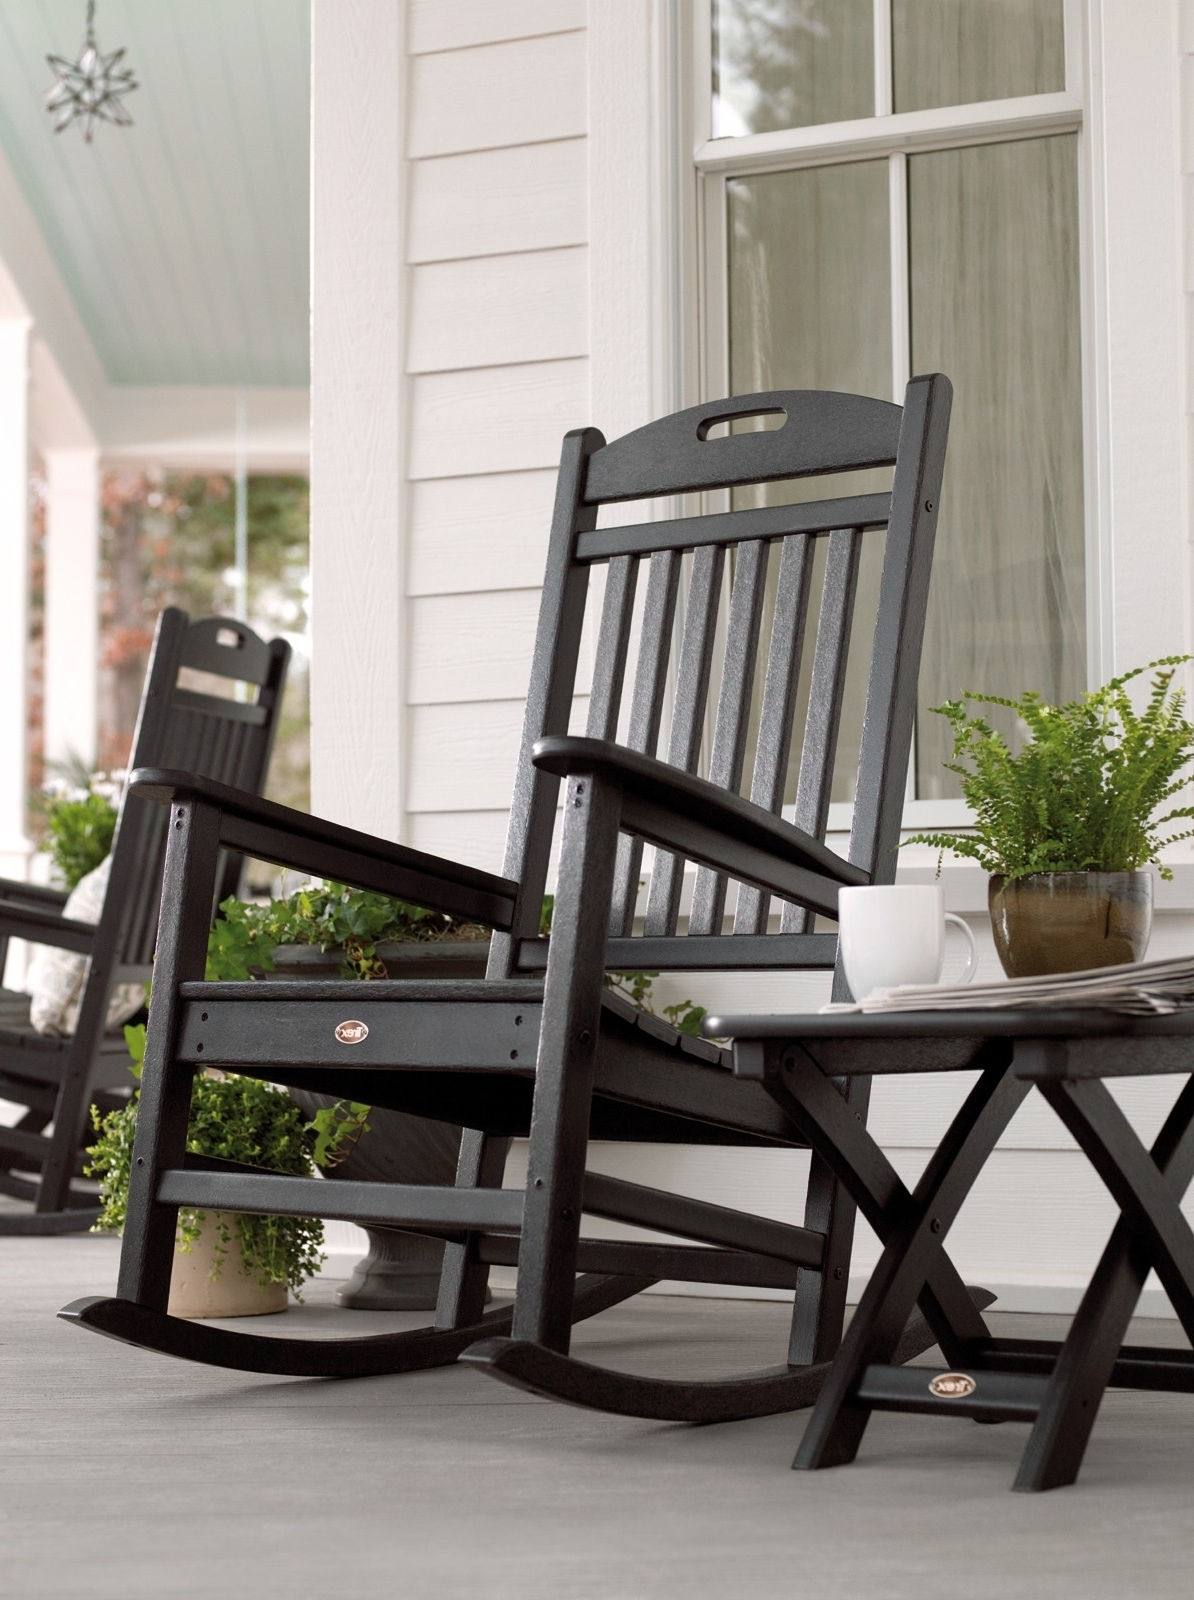 Rocking Chairs For Outside With Regard To Famous Patio & Garden : Outdoor Rocking Chair Seat Cushions Outdoor Rocking (View 12 of 15)